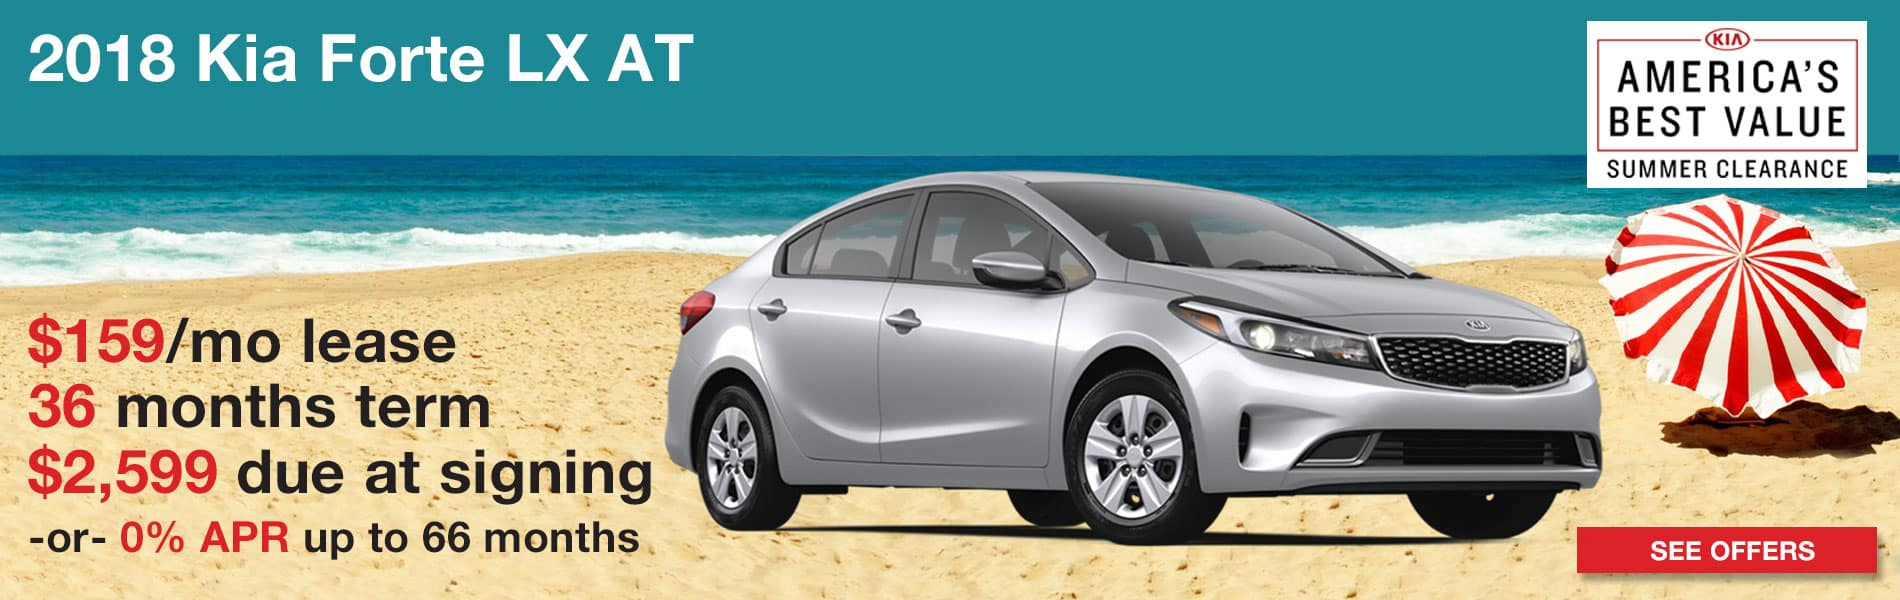 Lease an Forte LX for $159 per month with just $2,599 due at signing or 0% APR up to 66 months.